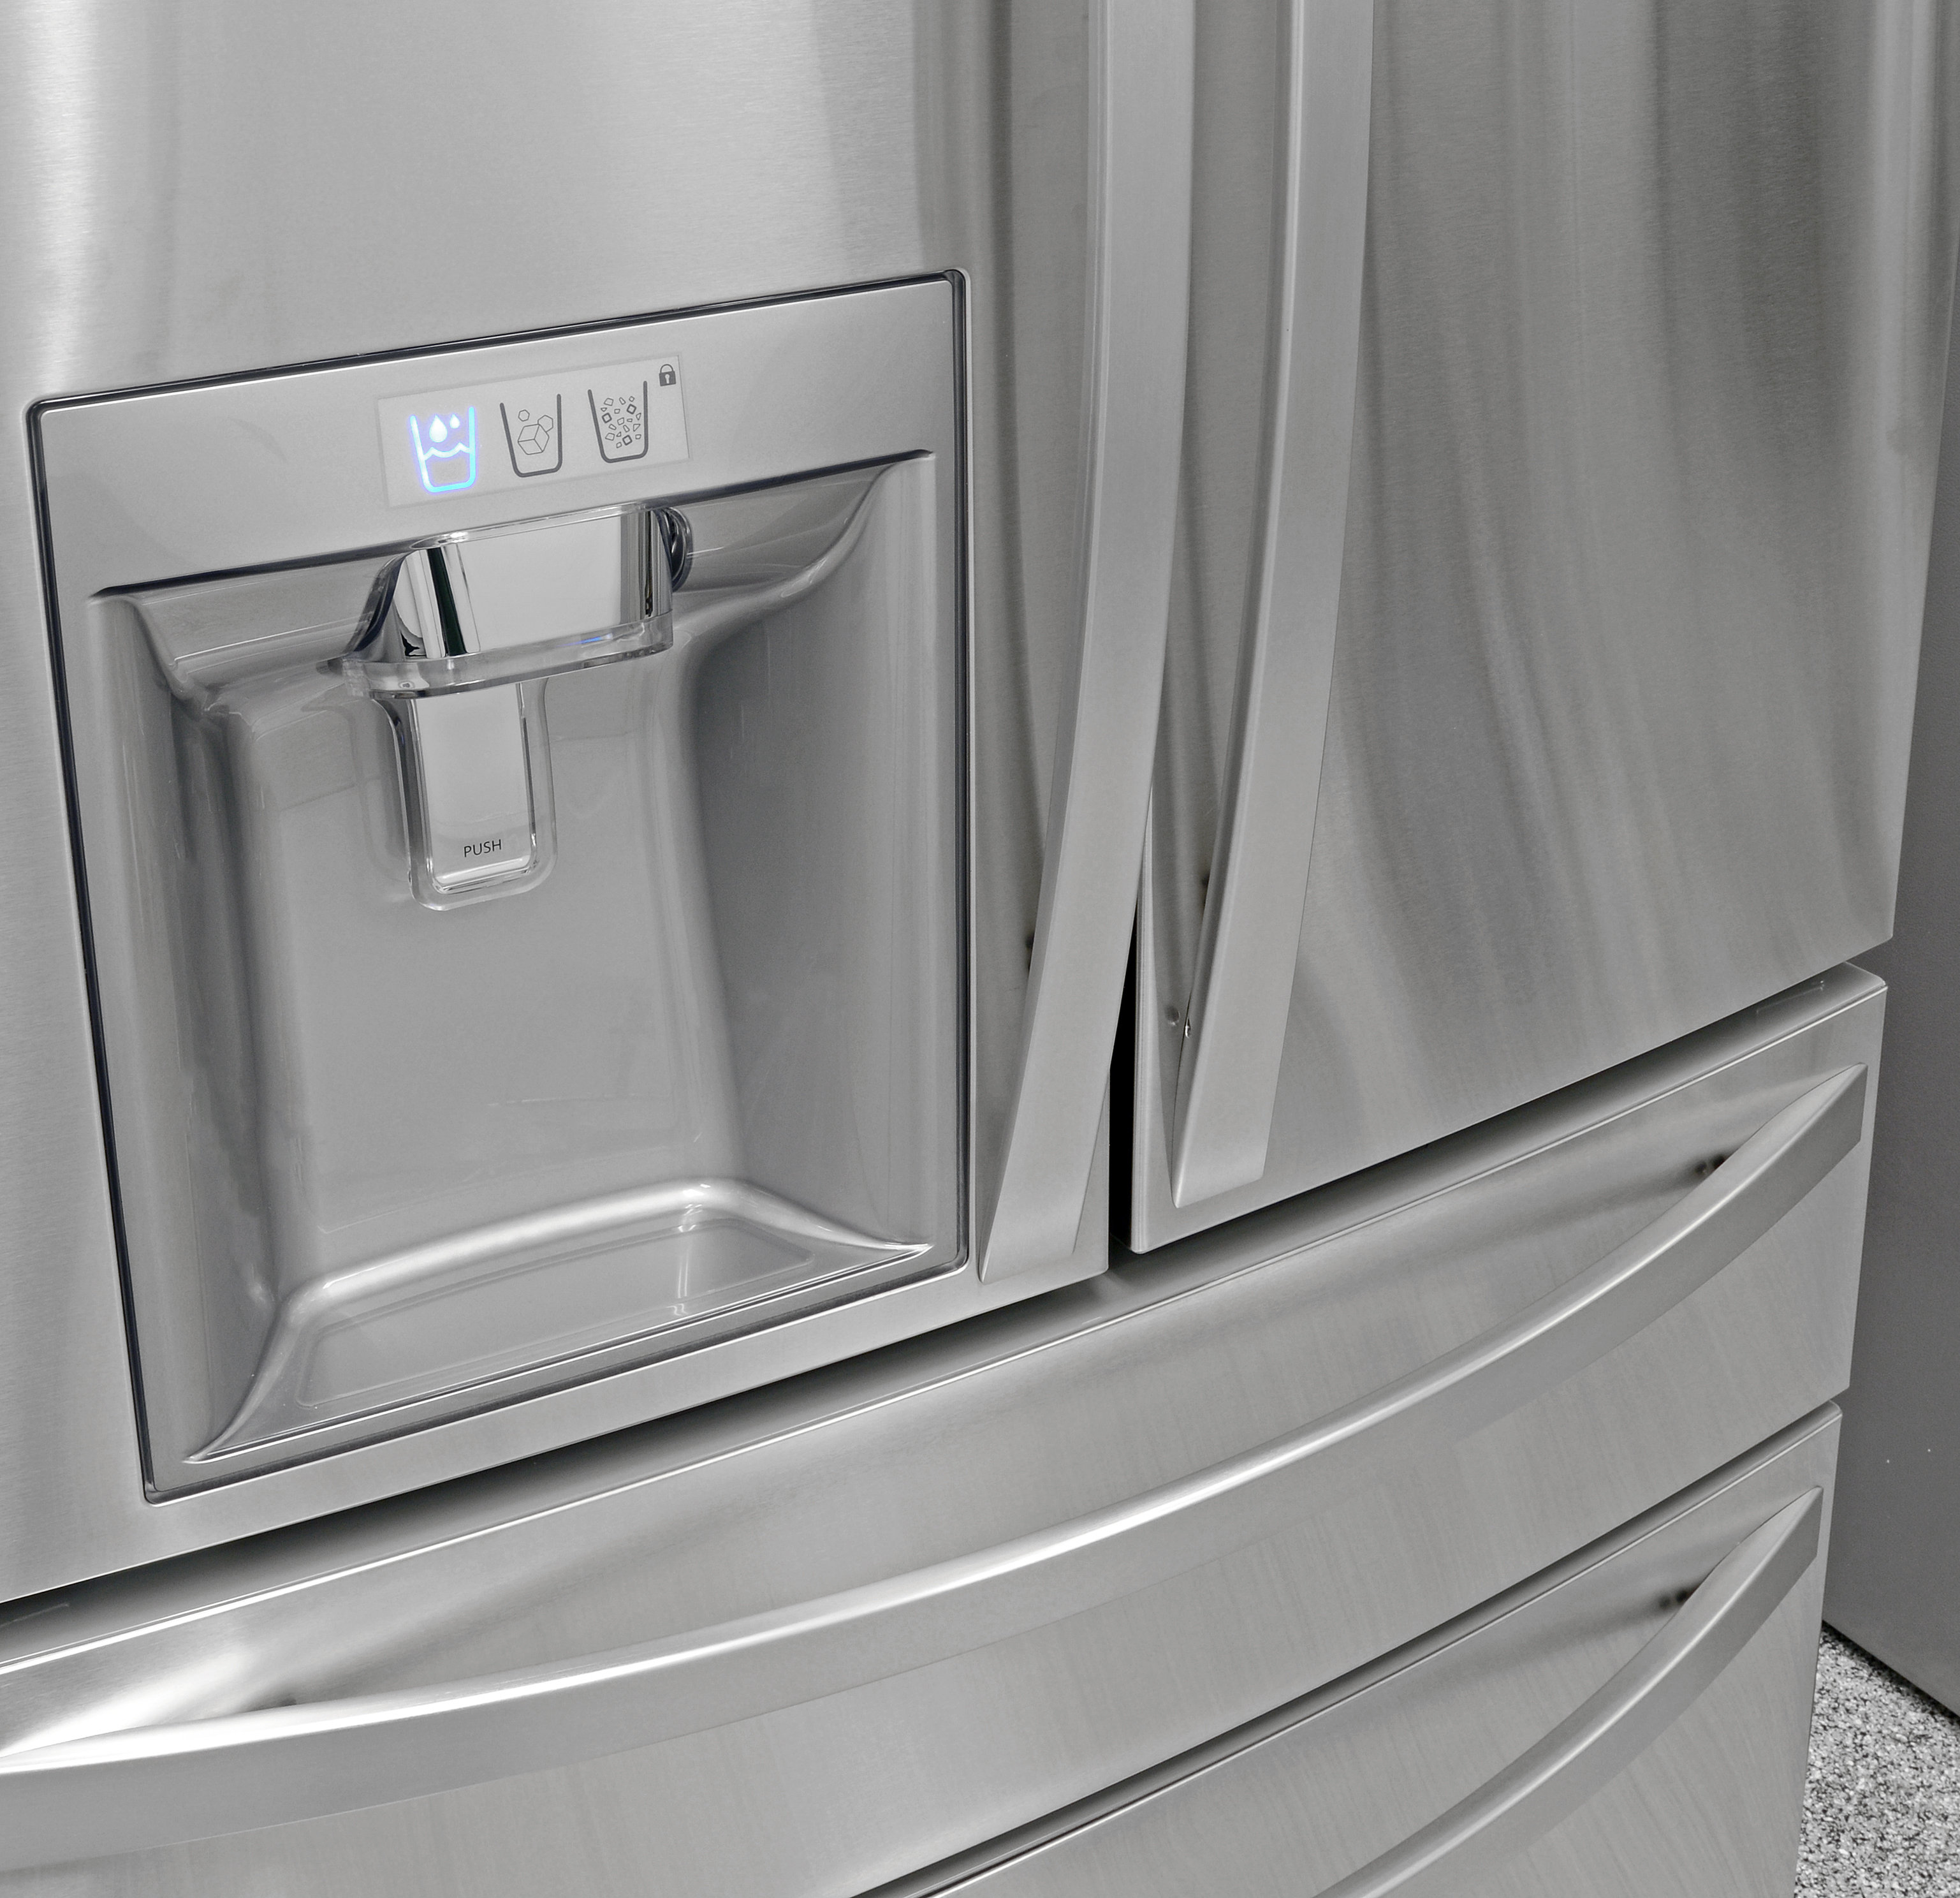 The Kenmore Elite 72483's stainless handles are smooth and comfortable to grip.